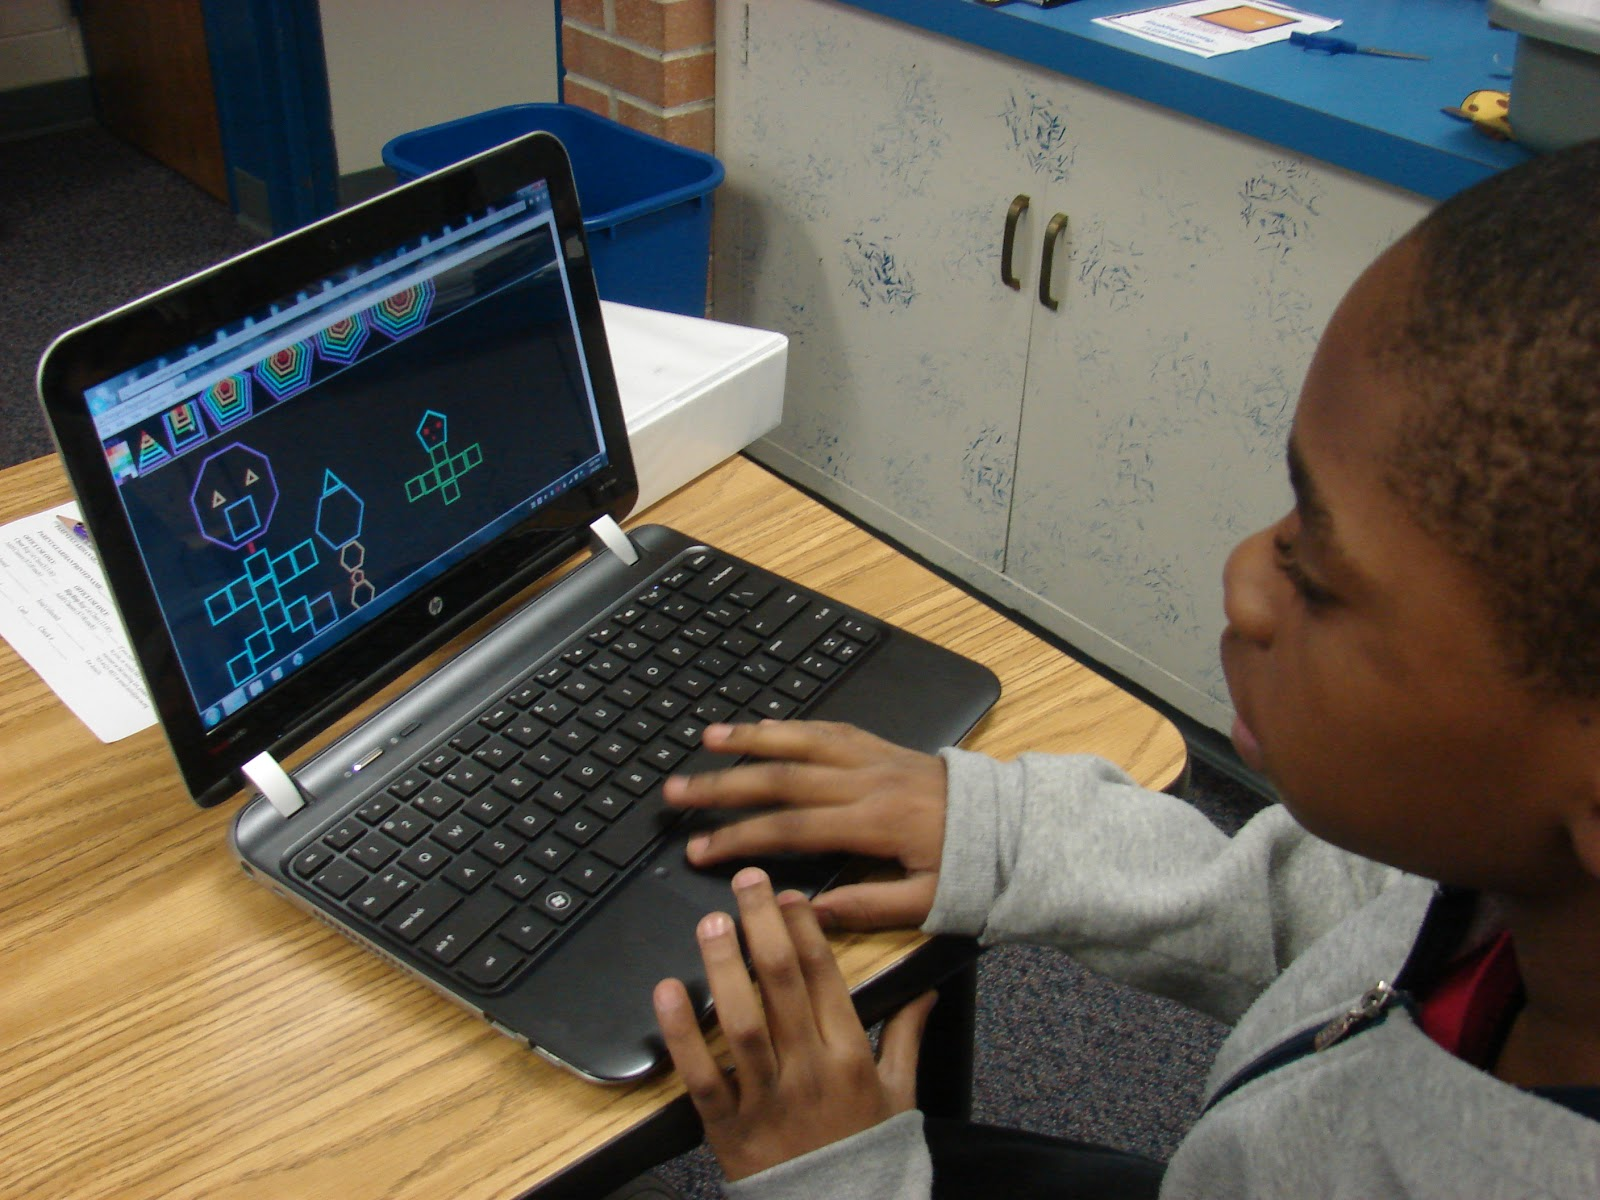 Technology Academy Using Virtual Manipulatives To Create Digital Pictures In Mathematics